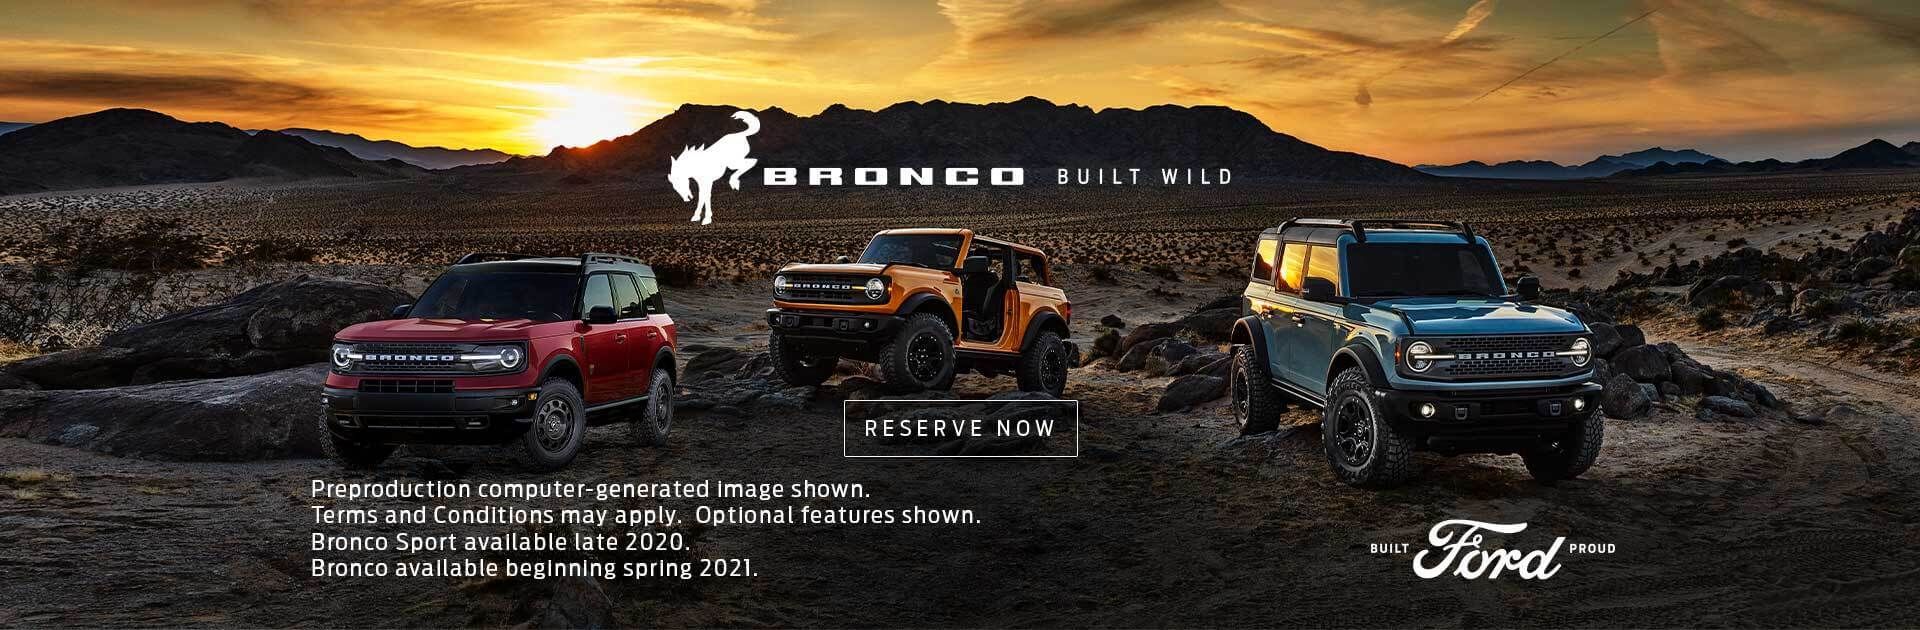 Bronco Reveal Dealercon 1920x630 V5 1